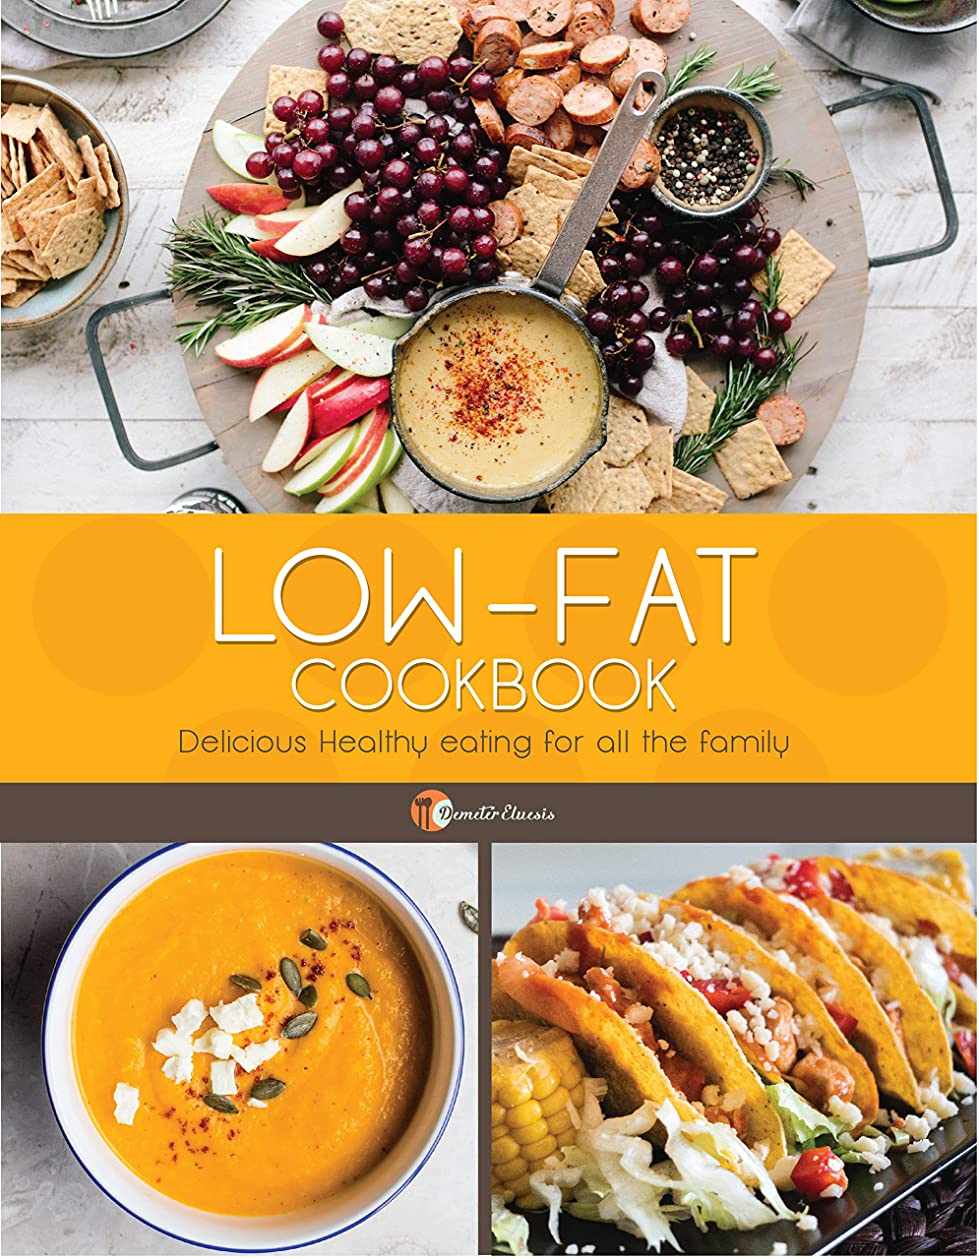 Low-Fat Cookbook: Delicious Healthy eating for all the family (Healthy Recipe Book 3) (English Edition)